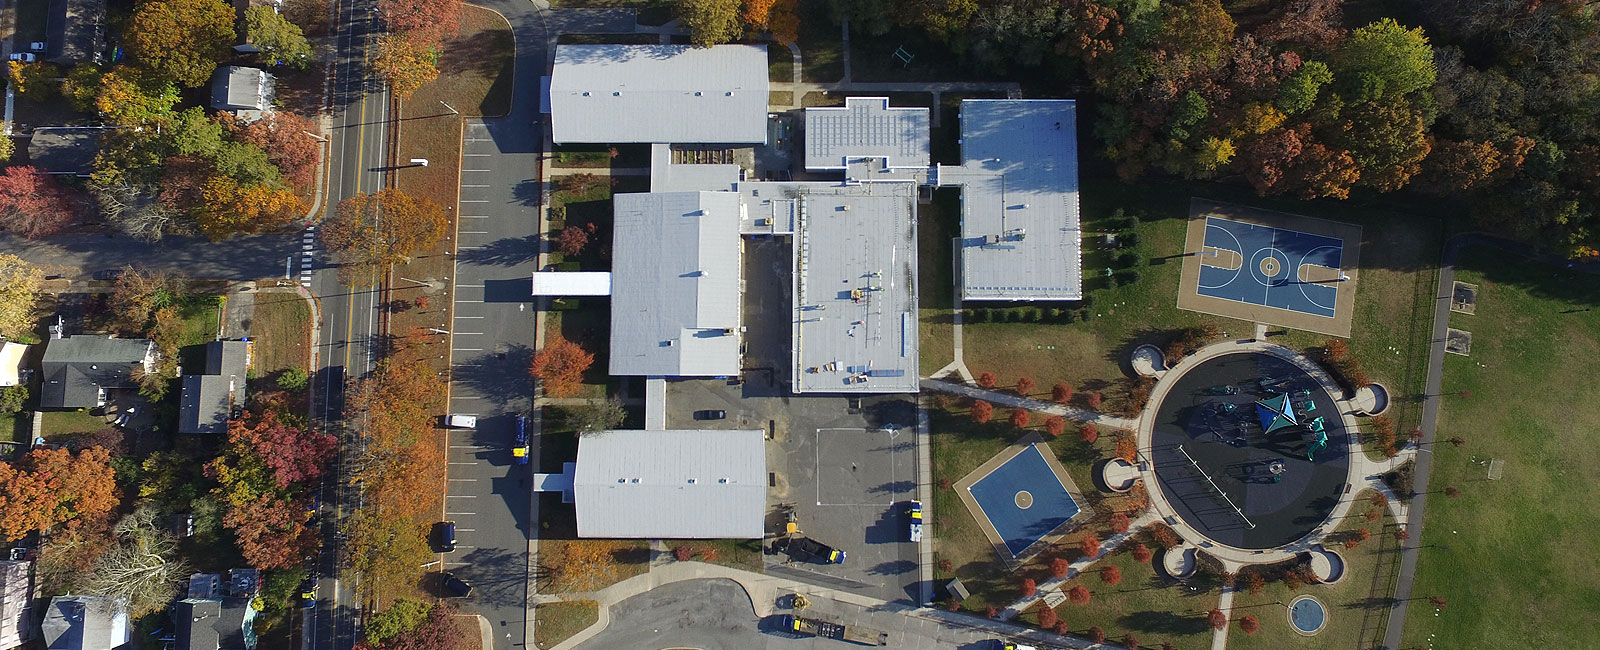 Brick Township Middle School Aerial Overhead